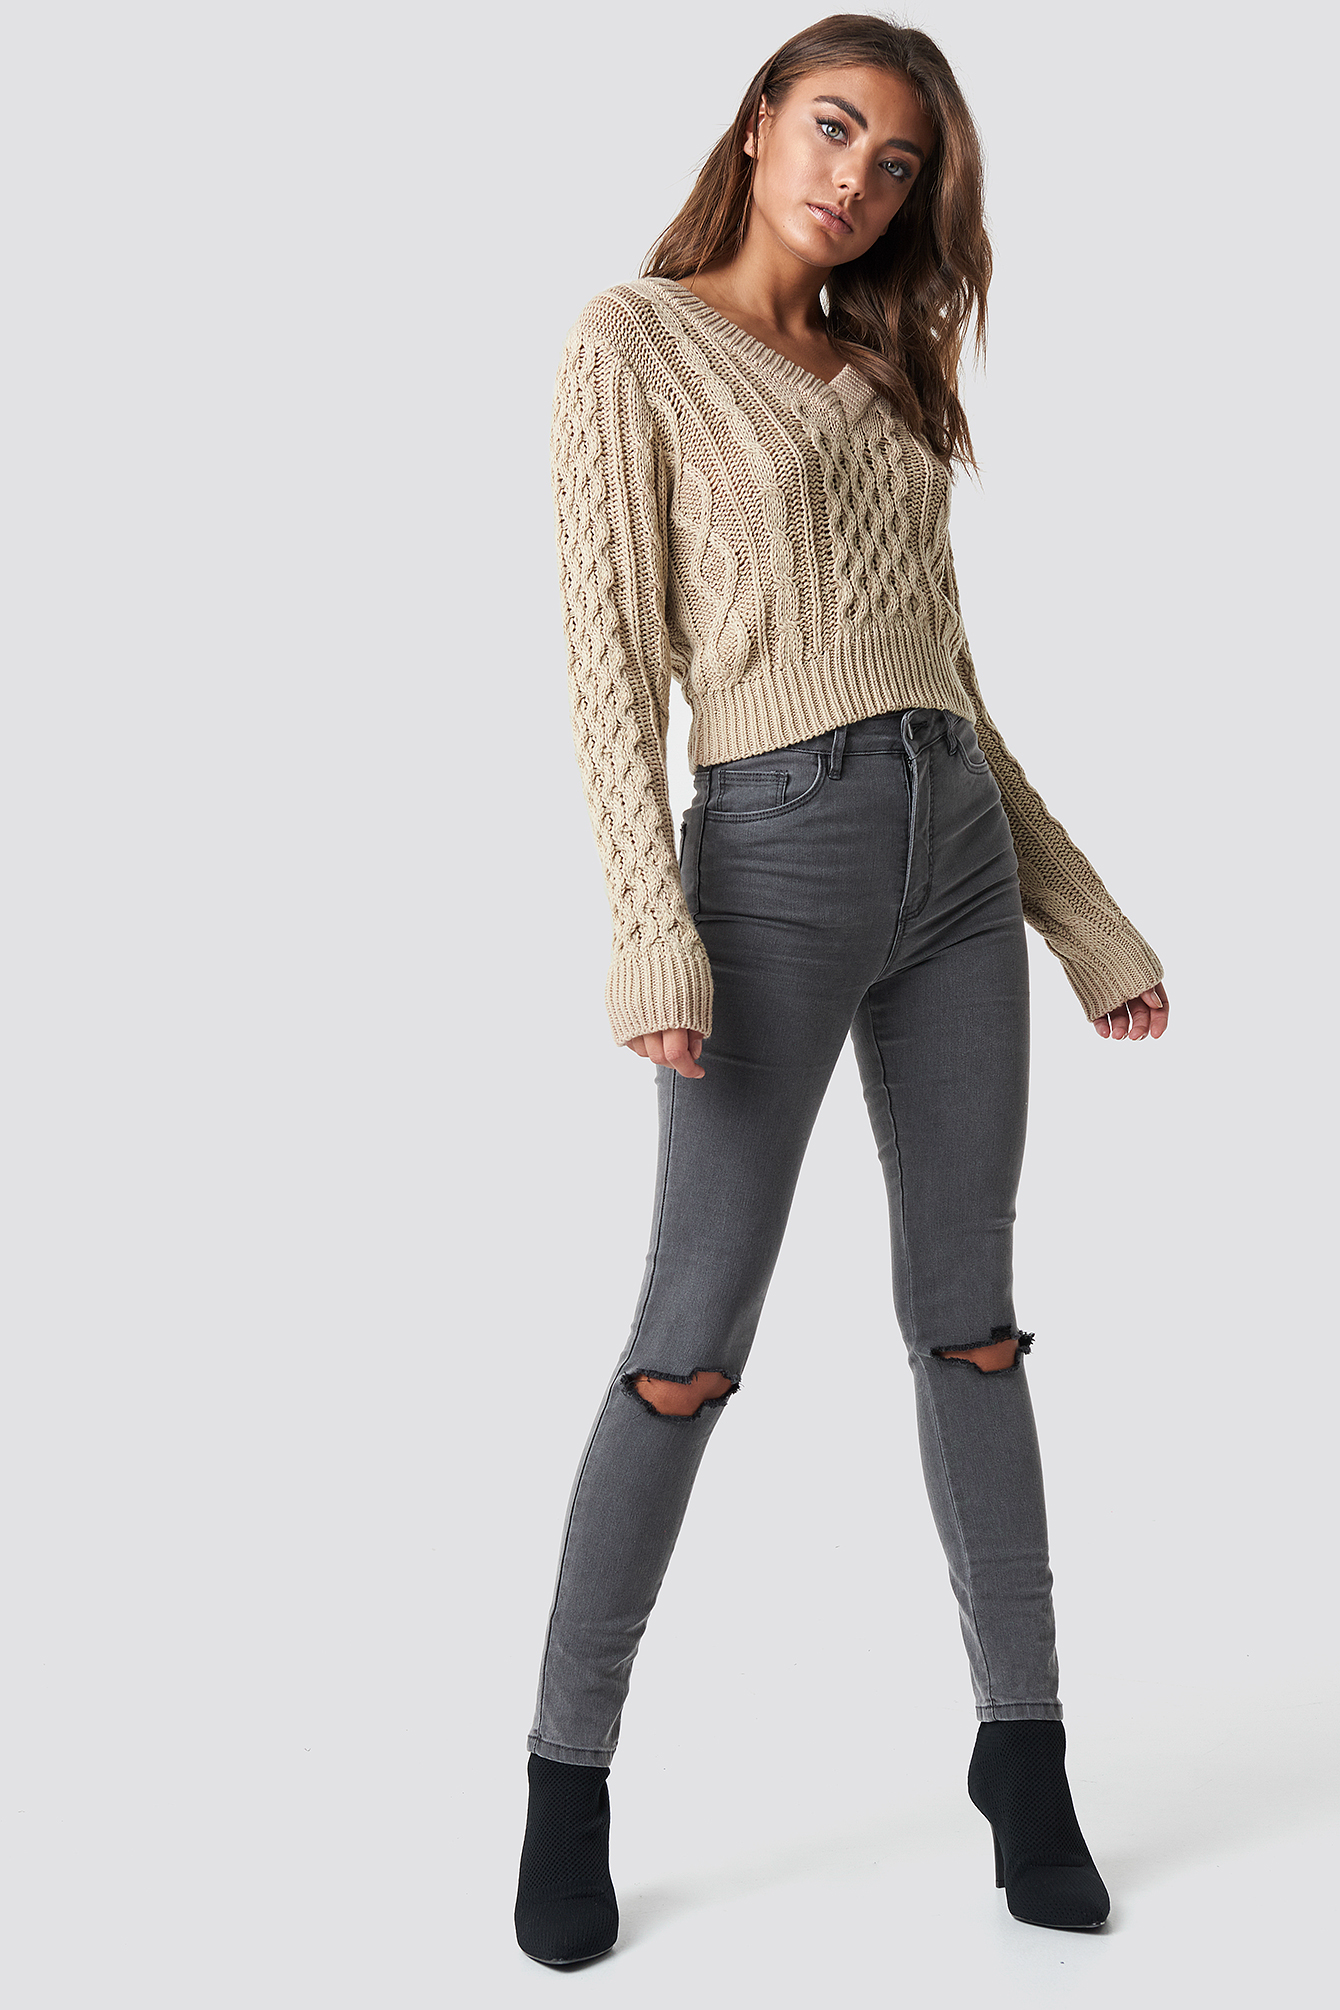 Beige Cropped Cable Knit Sweater